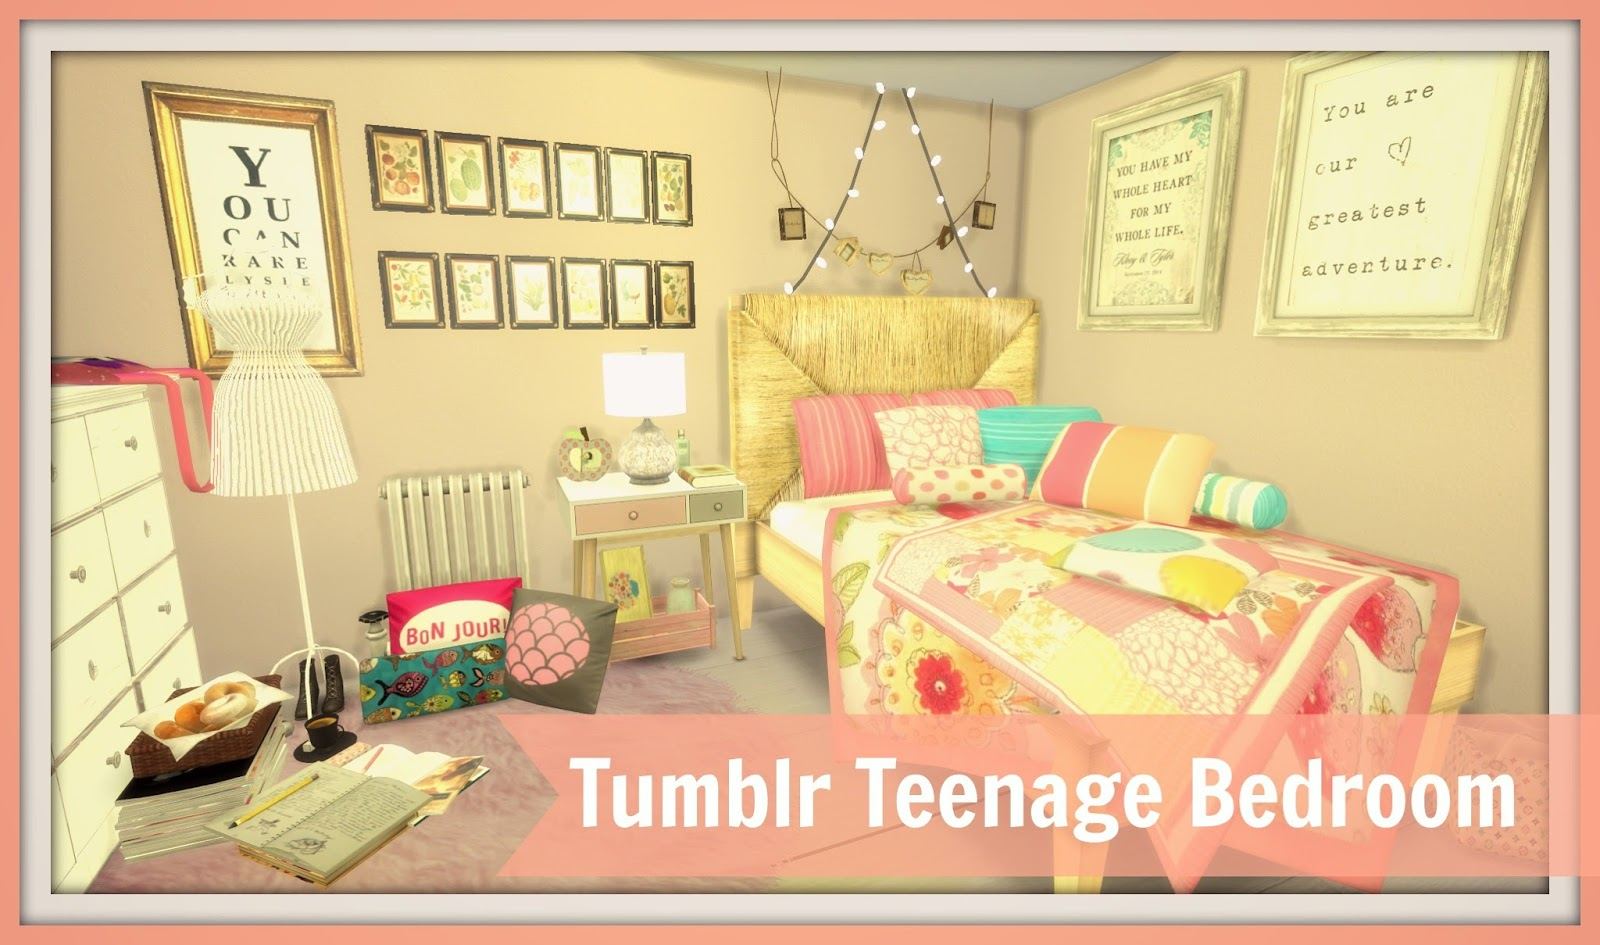 Sims 4 Tumblr Teenage Bedroom Dinha